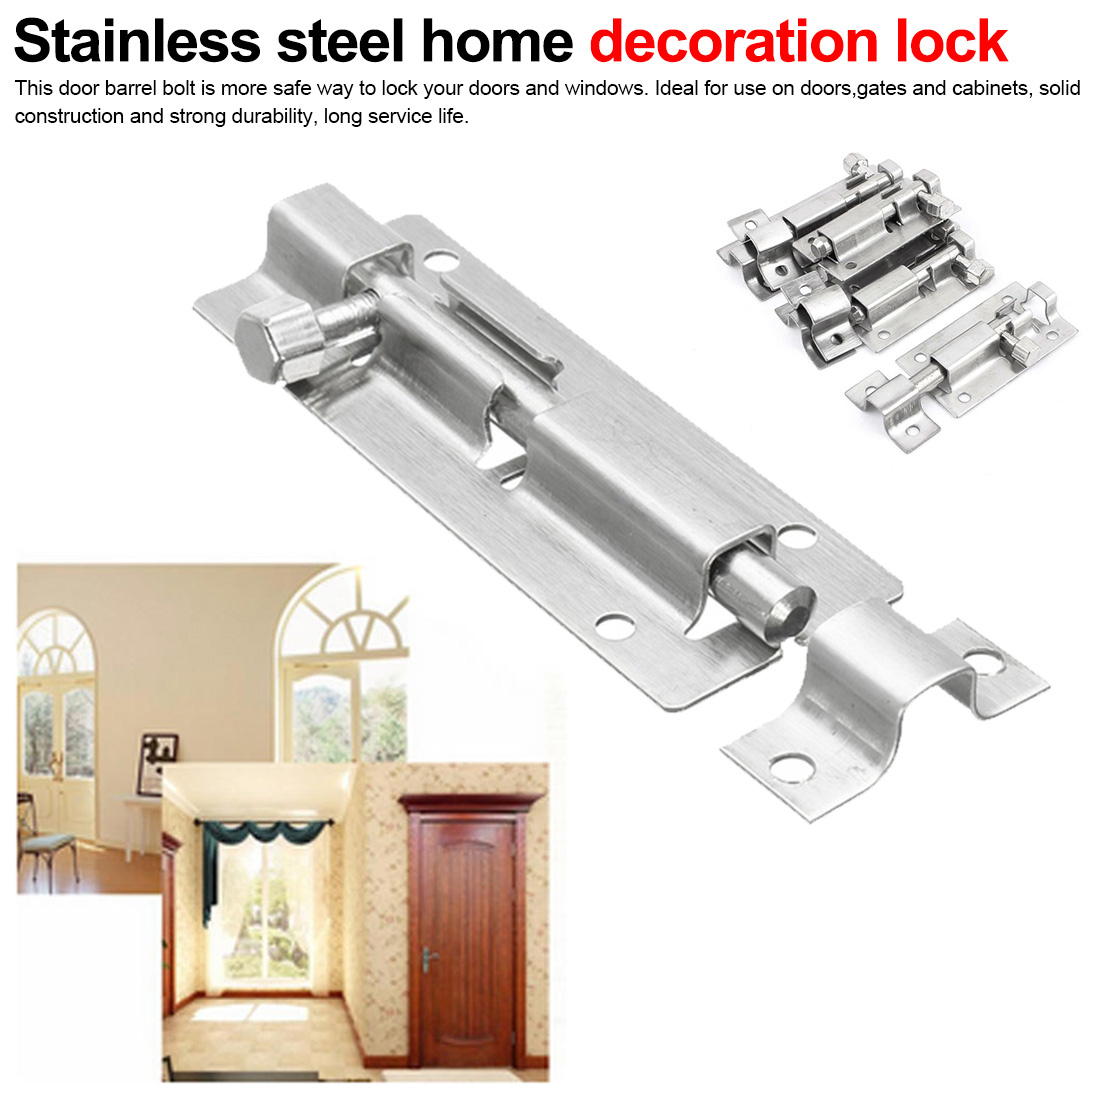 1.5/2/3/4/6/8/10/12 Inch Long Silver Stainless Steel Home decoration door window <font><b>latch</b></font> Sliding Lock <font><b>Barrel</b></font> <font><b>Bolt</b></font> <font><b>Latch</b></font> image